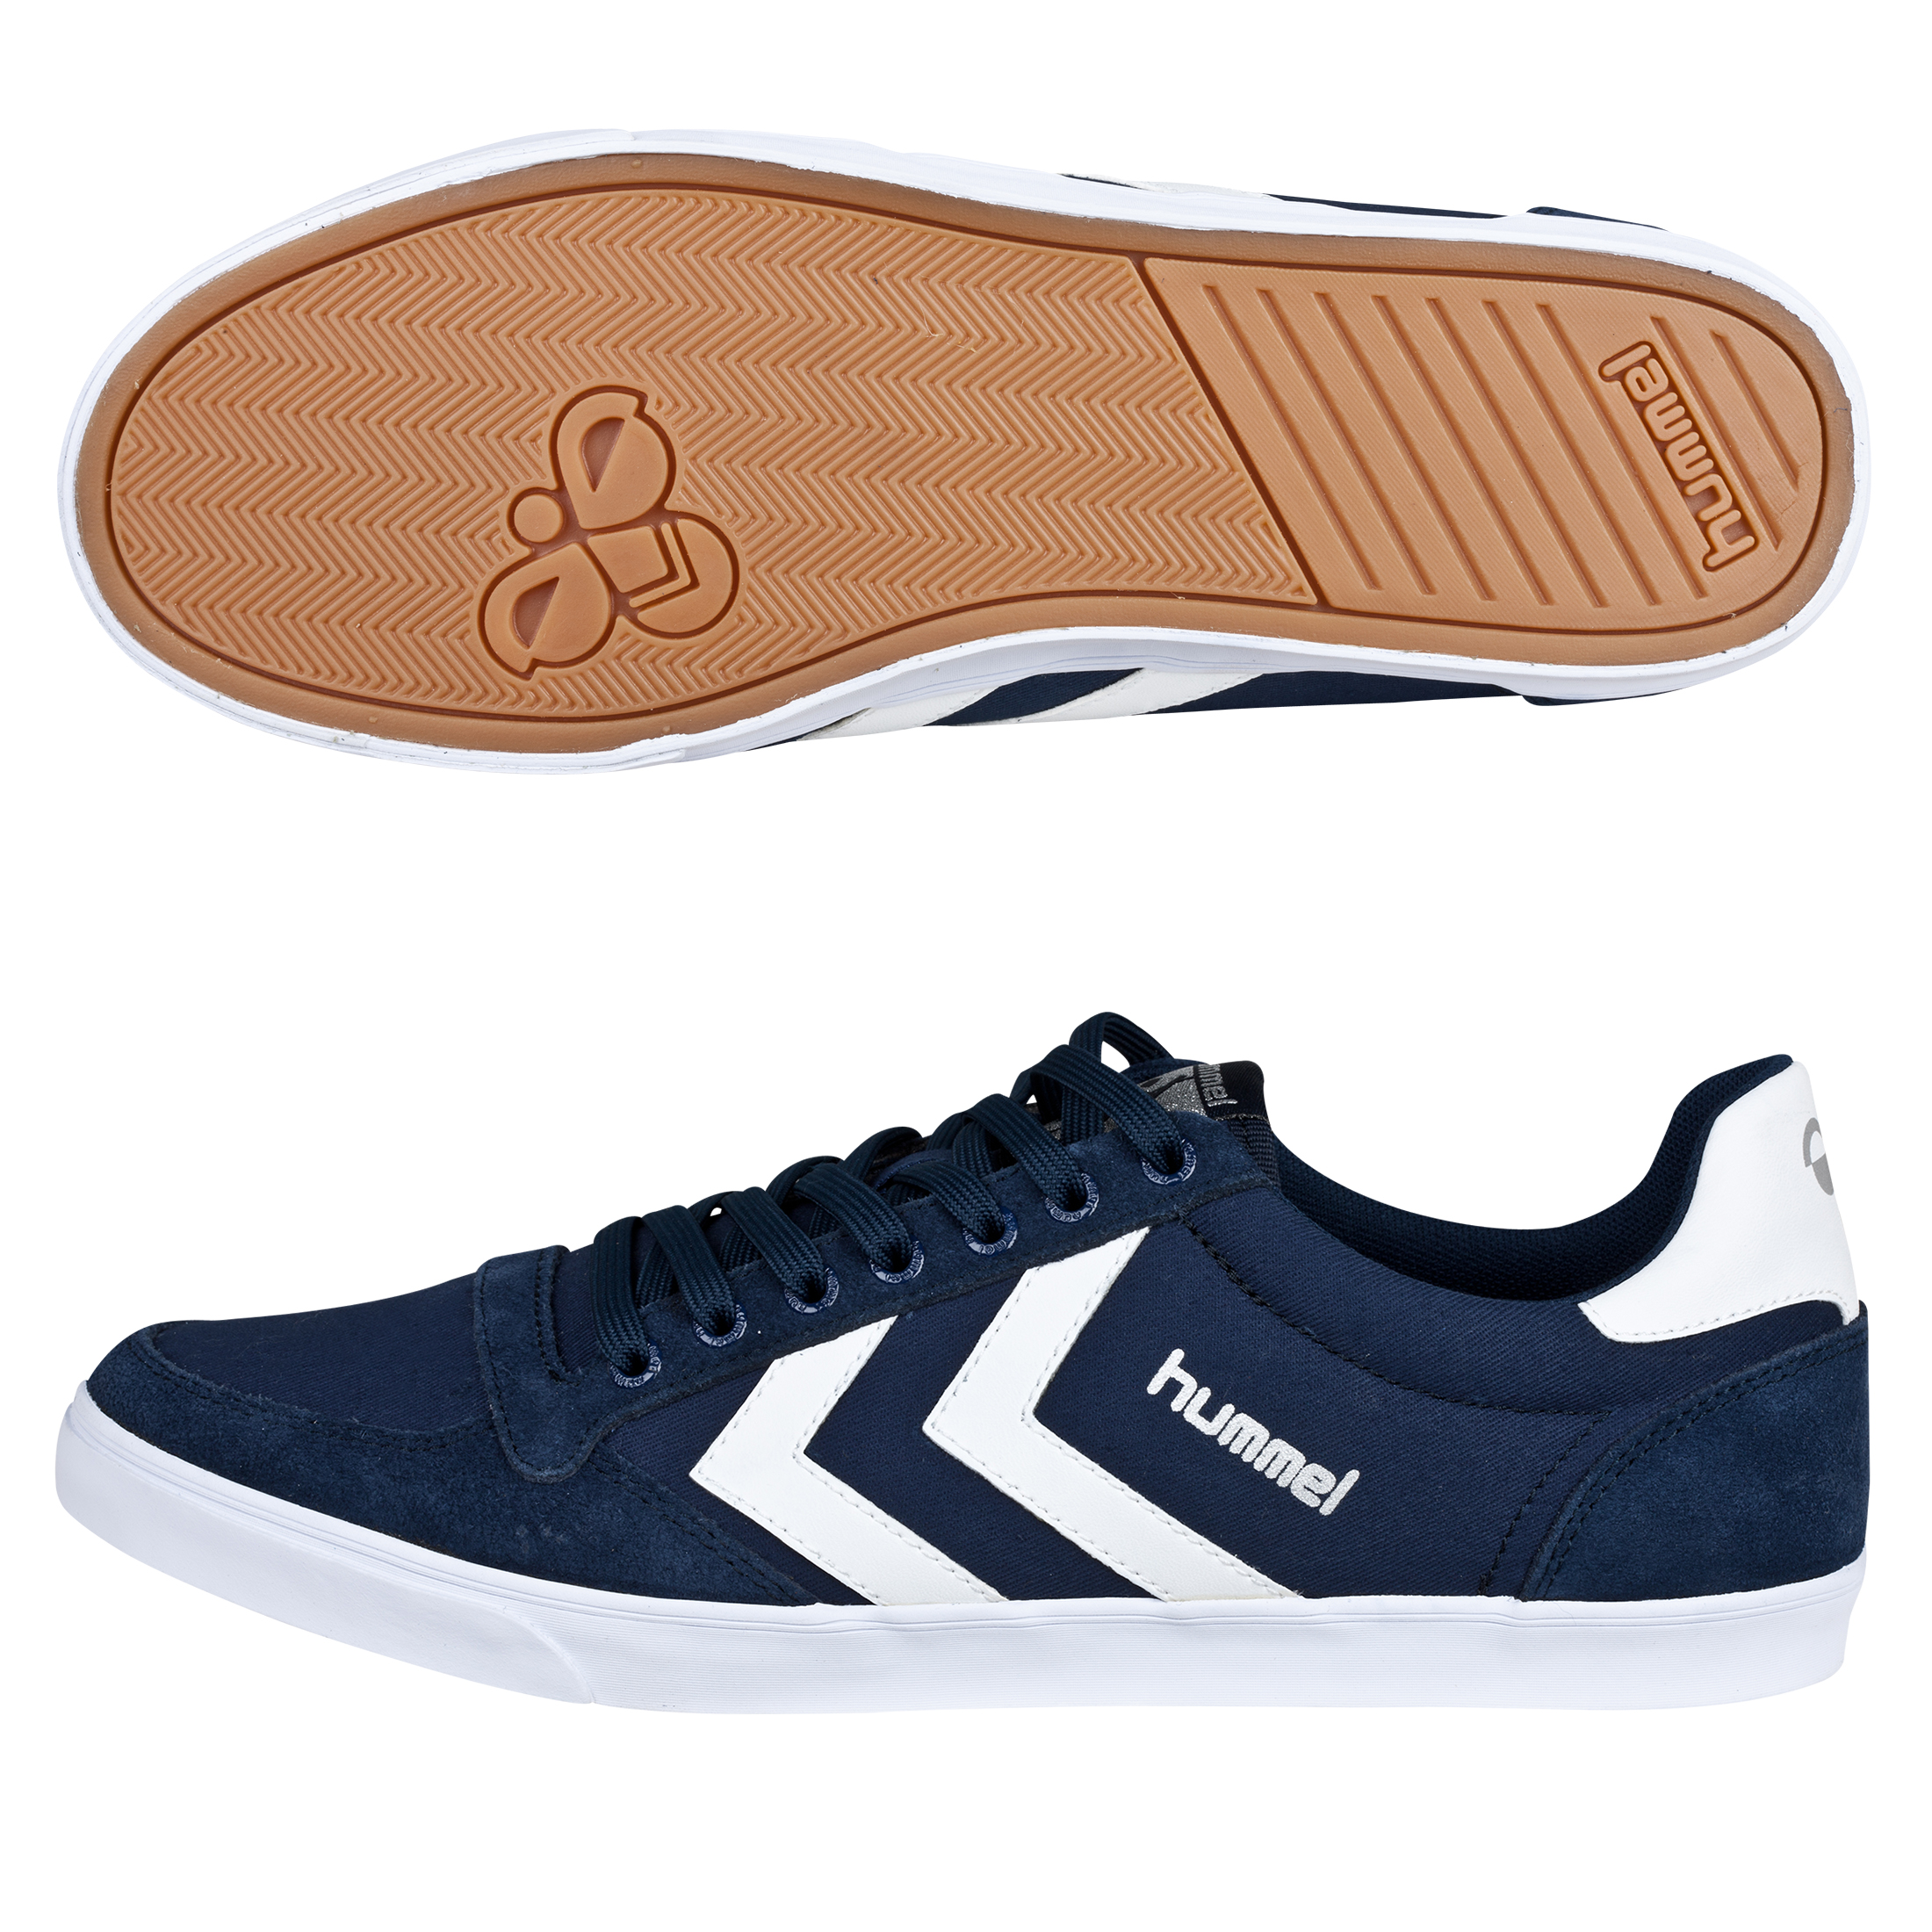 Hummel Slimmer Stadil Low Canvas Trainers - Dress Blue/White